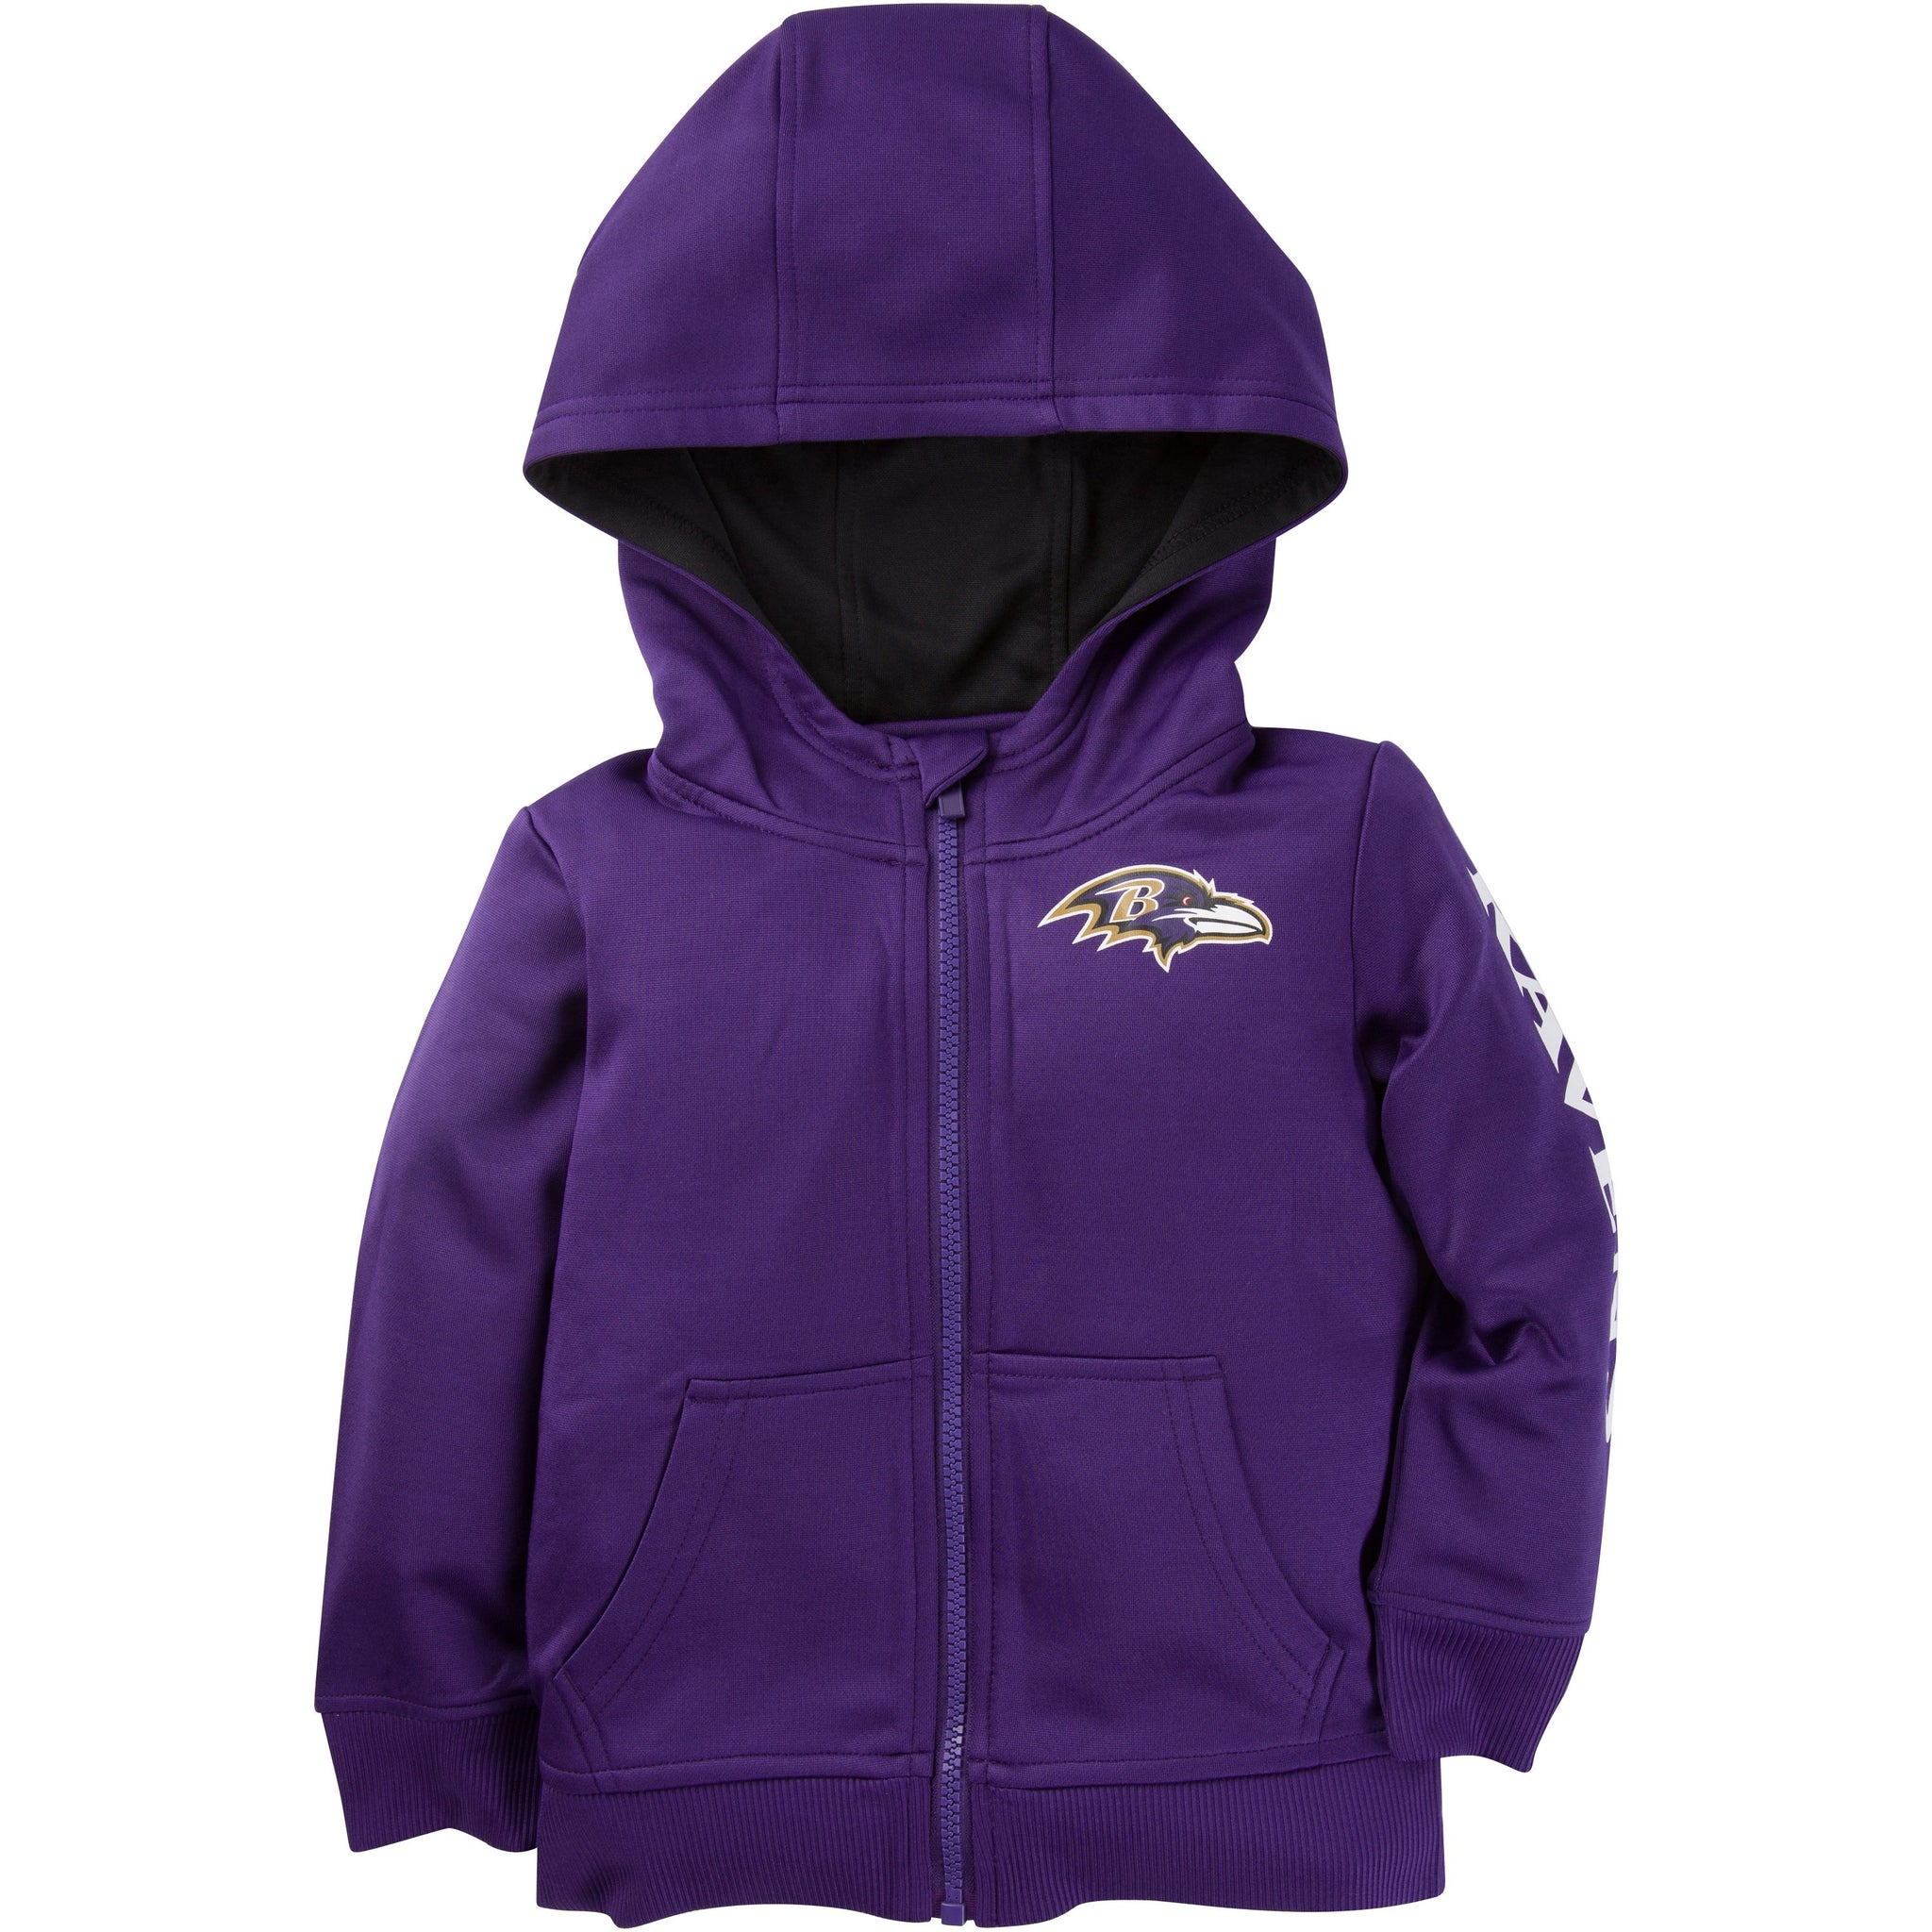 Baltimore Ravens Boys Jacket-Gerber Childrenswear